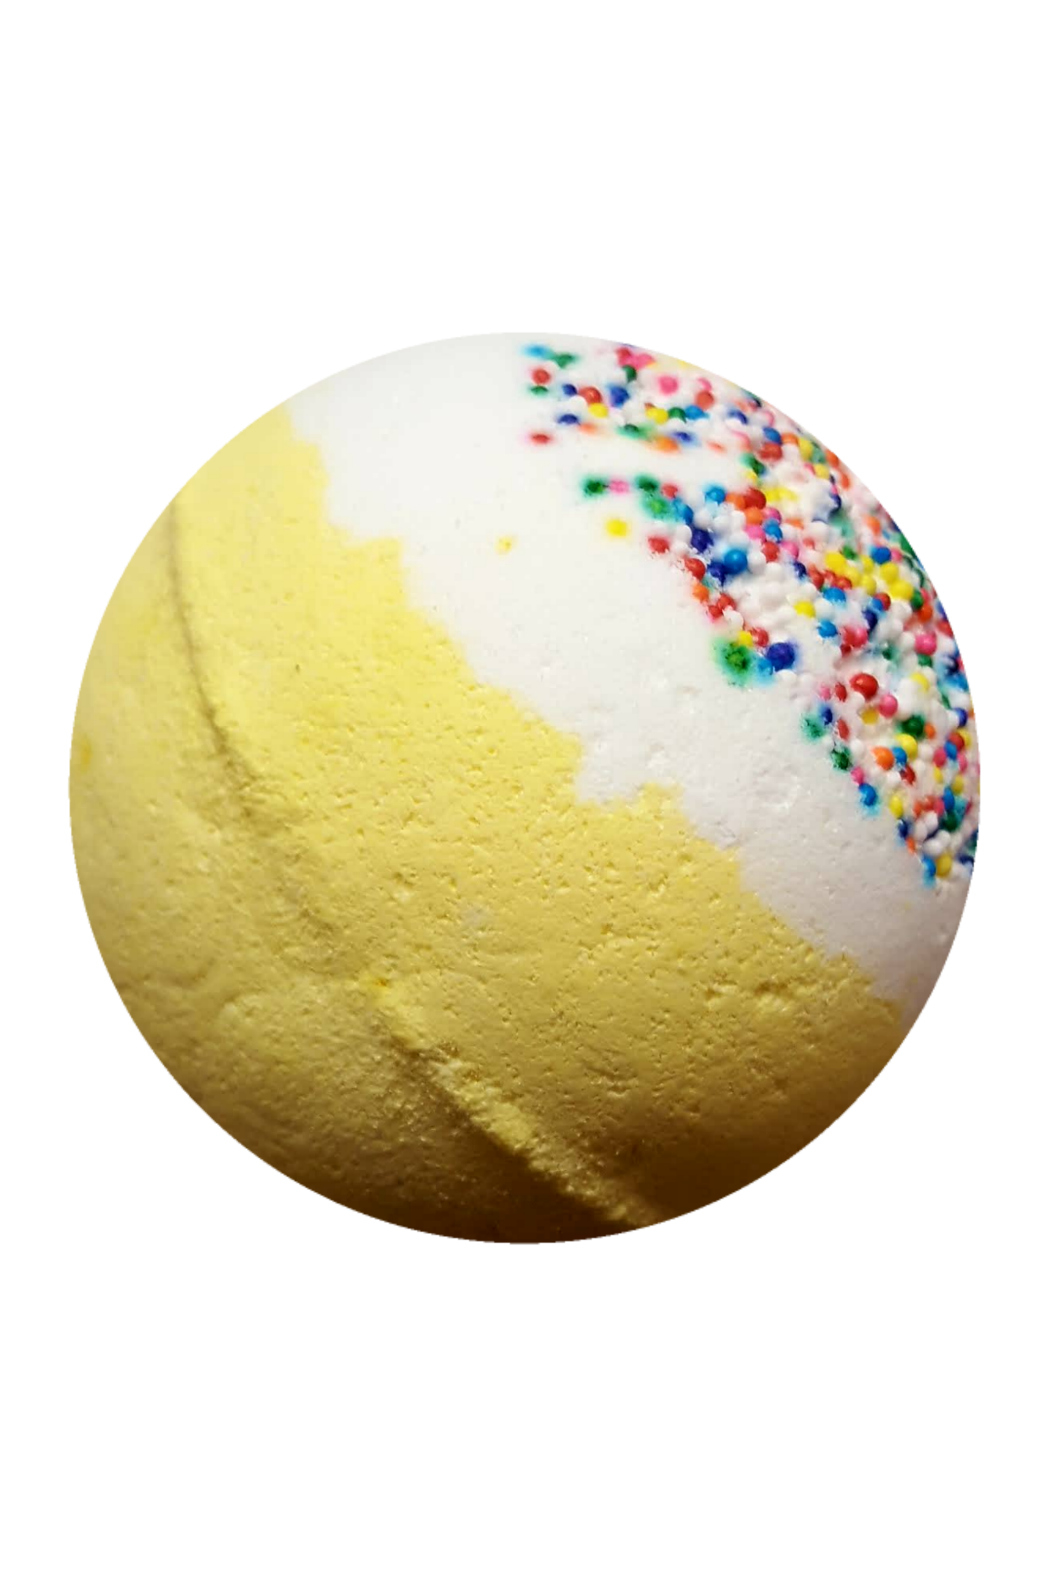 FIZZ TIME LLC HOLIDAY COOKIE BATH BOMB - Main Image